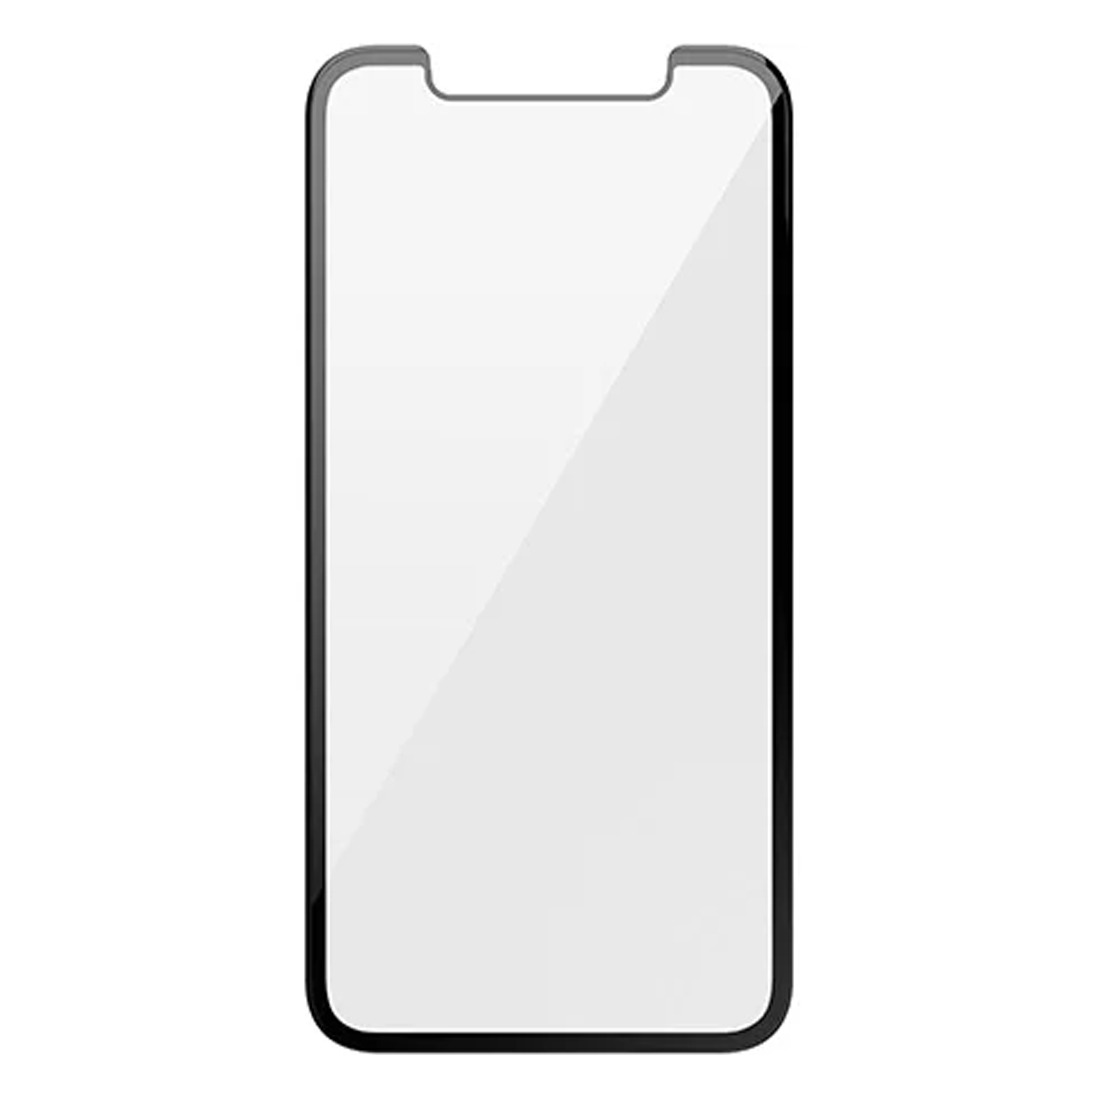 Otterbox Amplify Edge 2 Edge Screen Protector for Apple iPhone 11